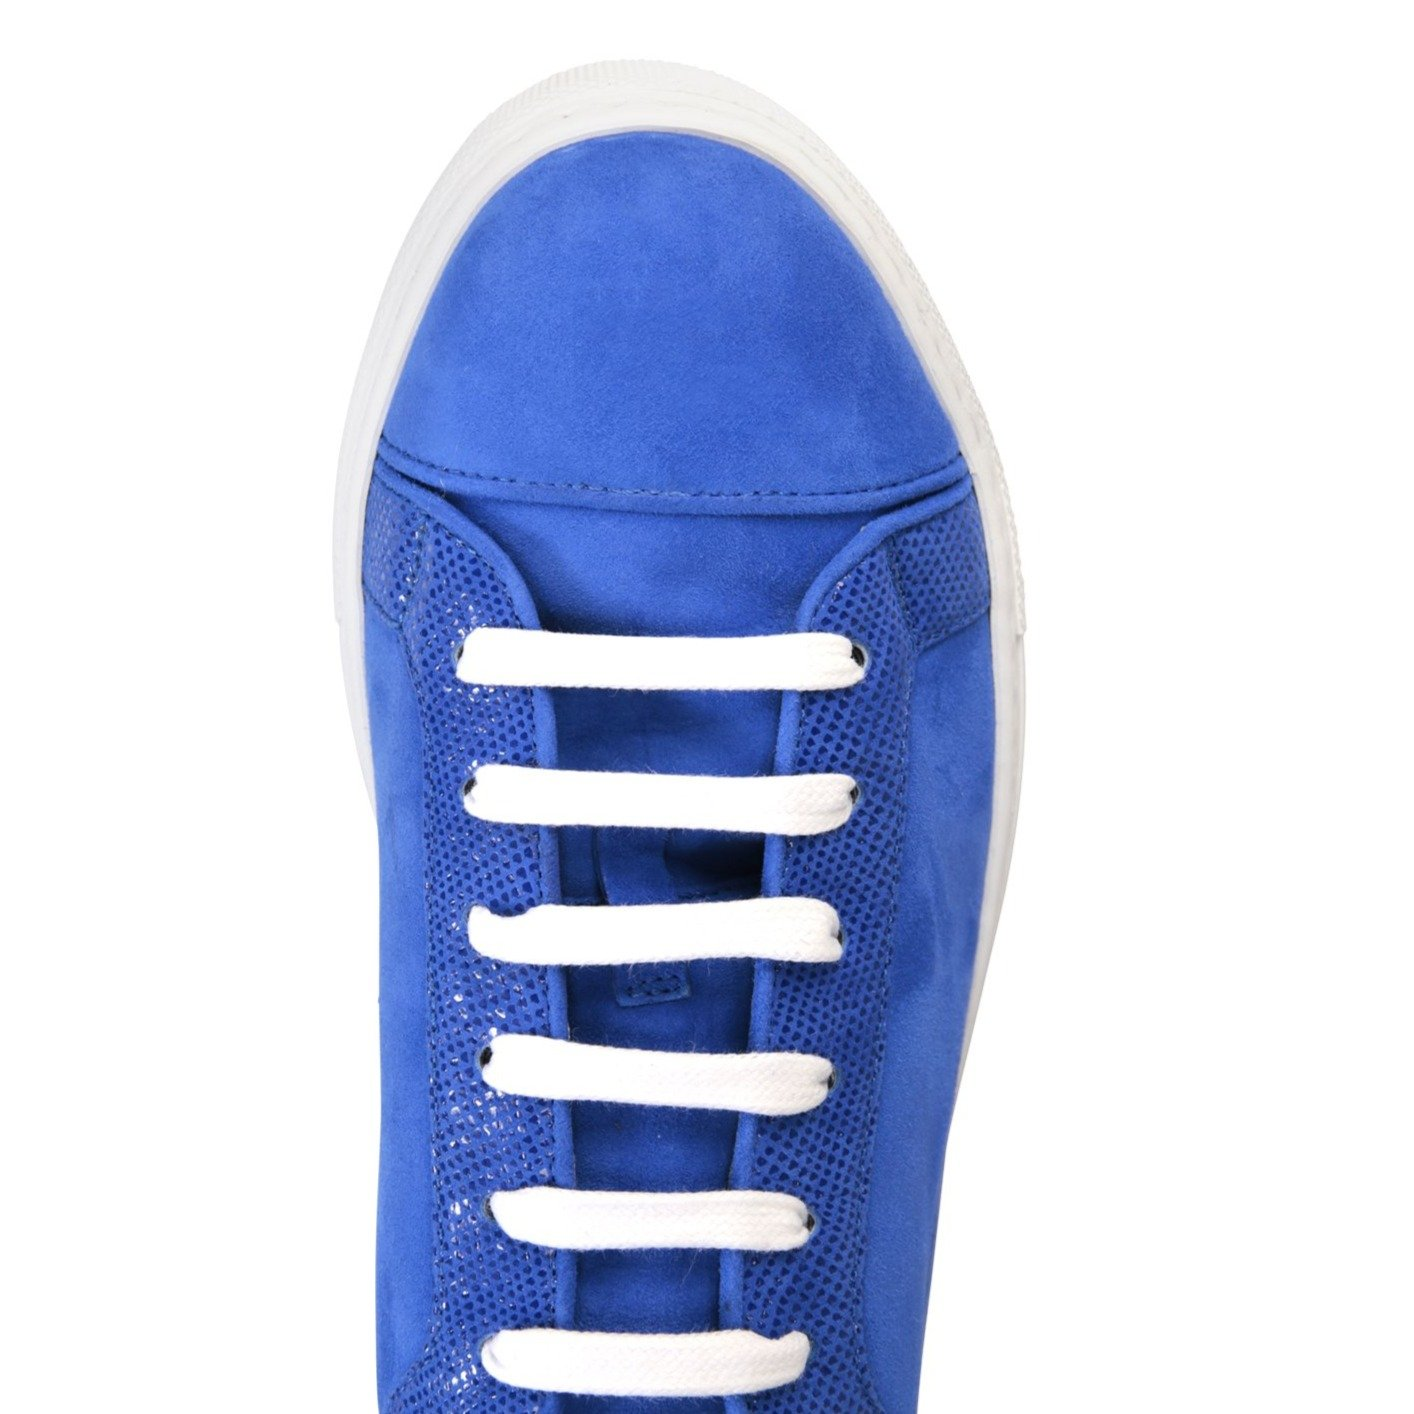 SATURNIA - Velukid Cobalt + Karung, VIAJIYU - Women's Hand Made Sustainable Luxury Shoes. Made in Italy. Made to Order.